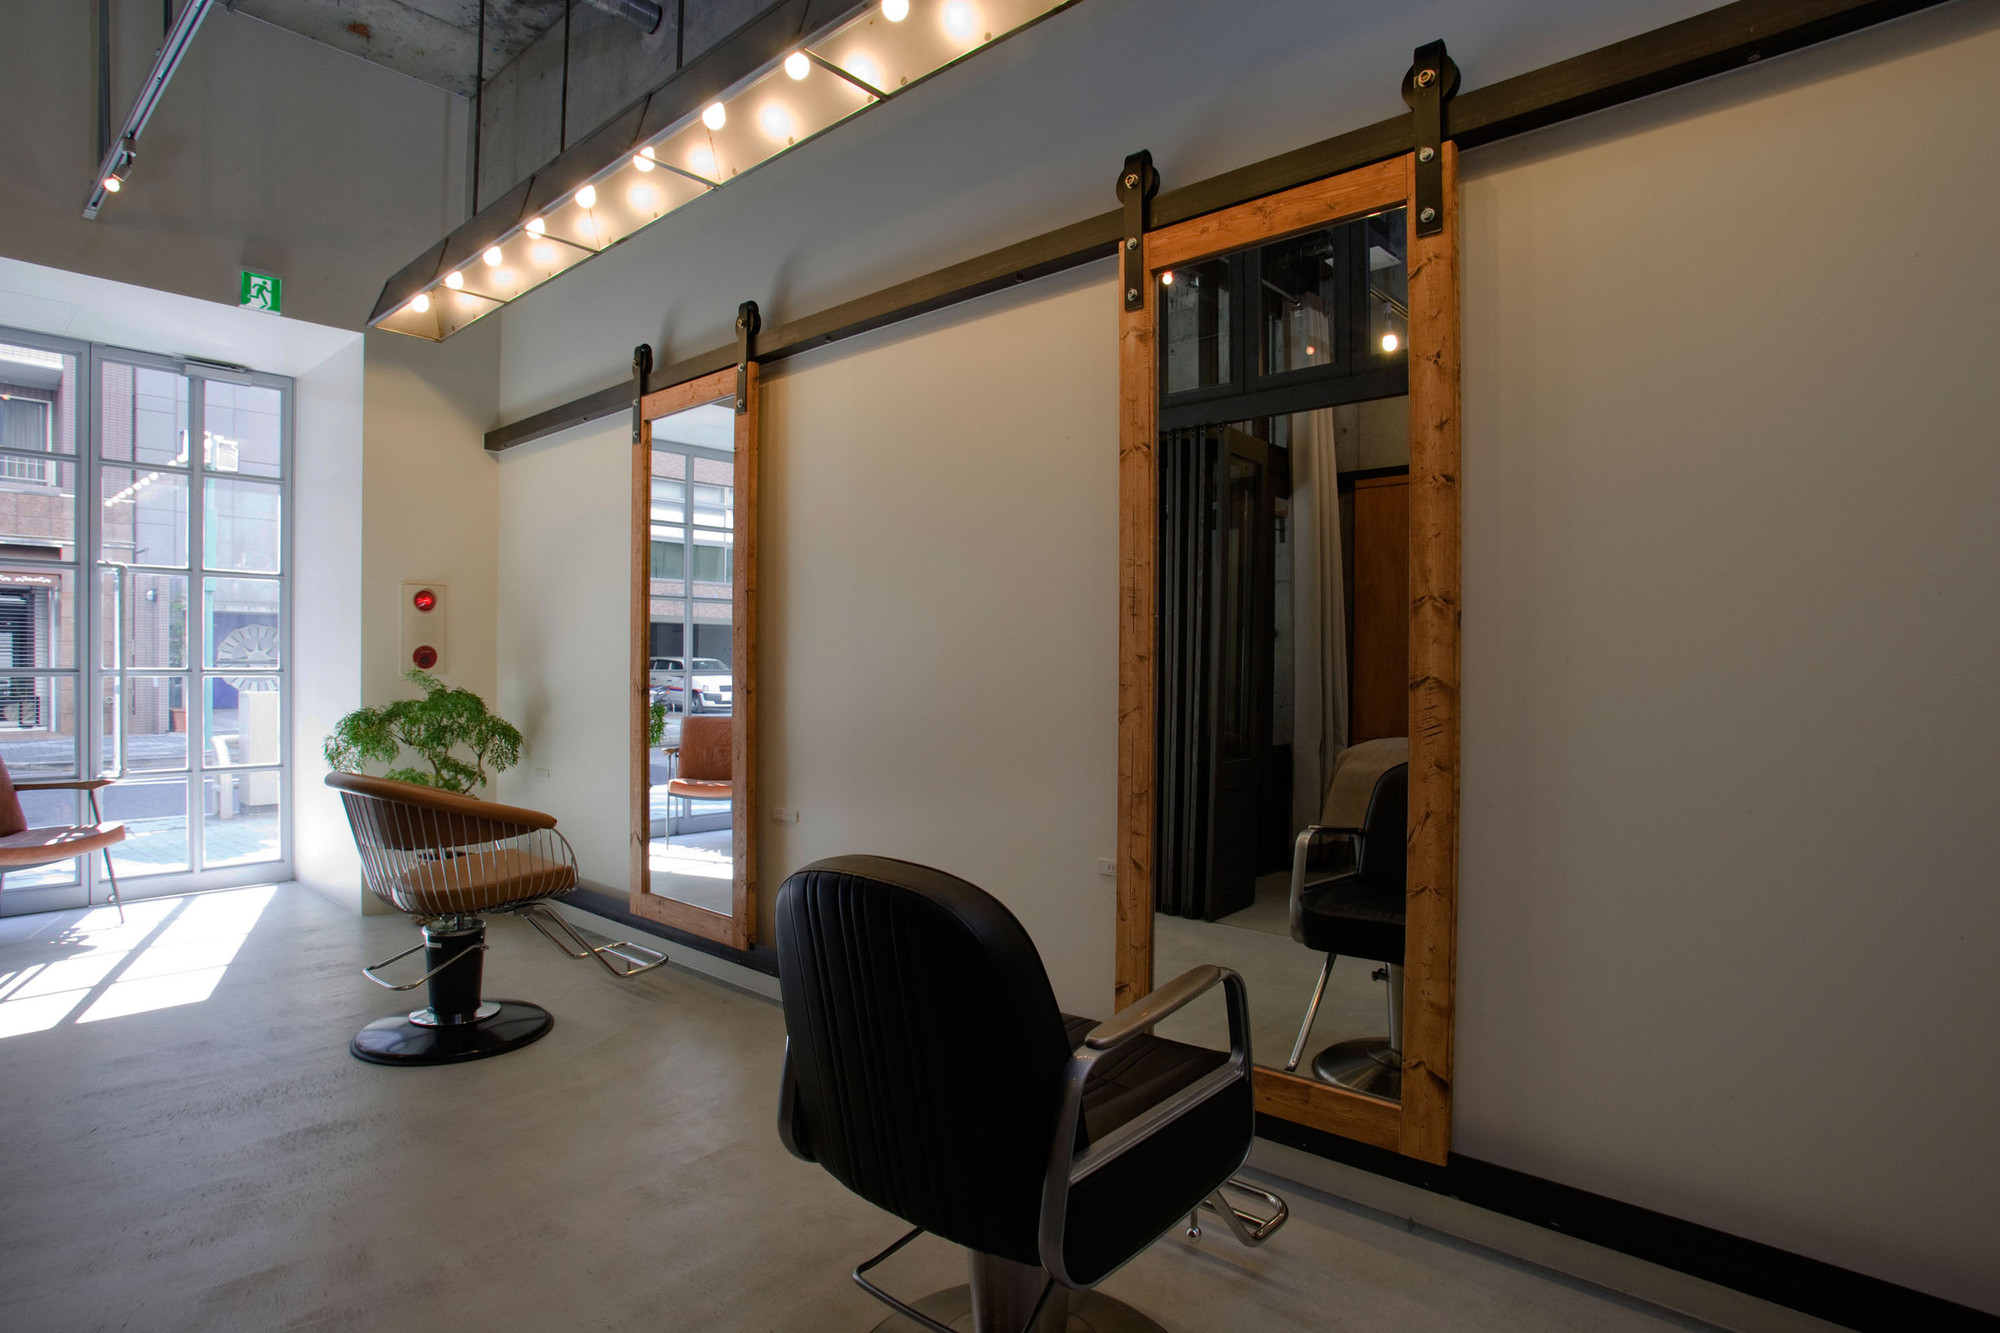 Gallery Of Ki Se Tsu Hair Salon Iks Design 11